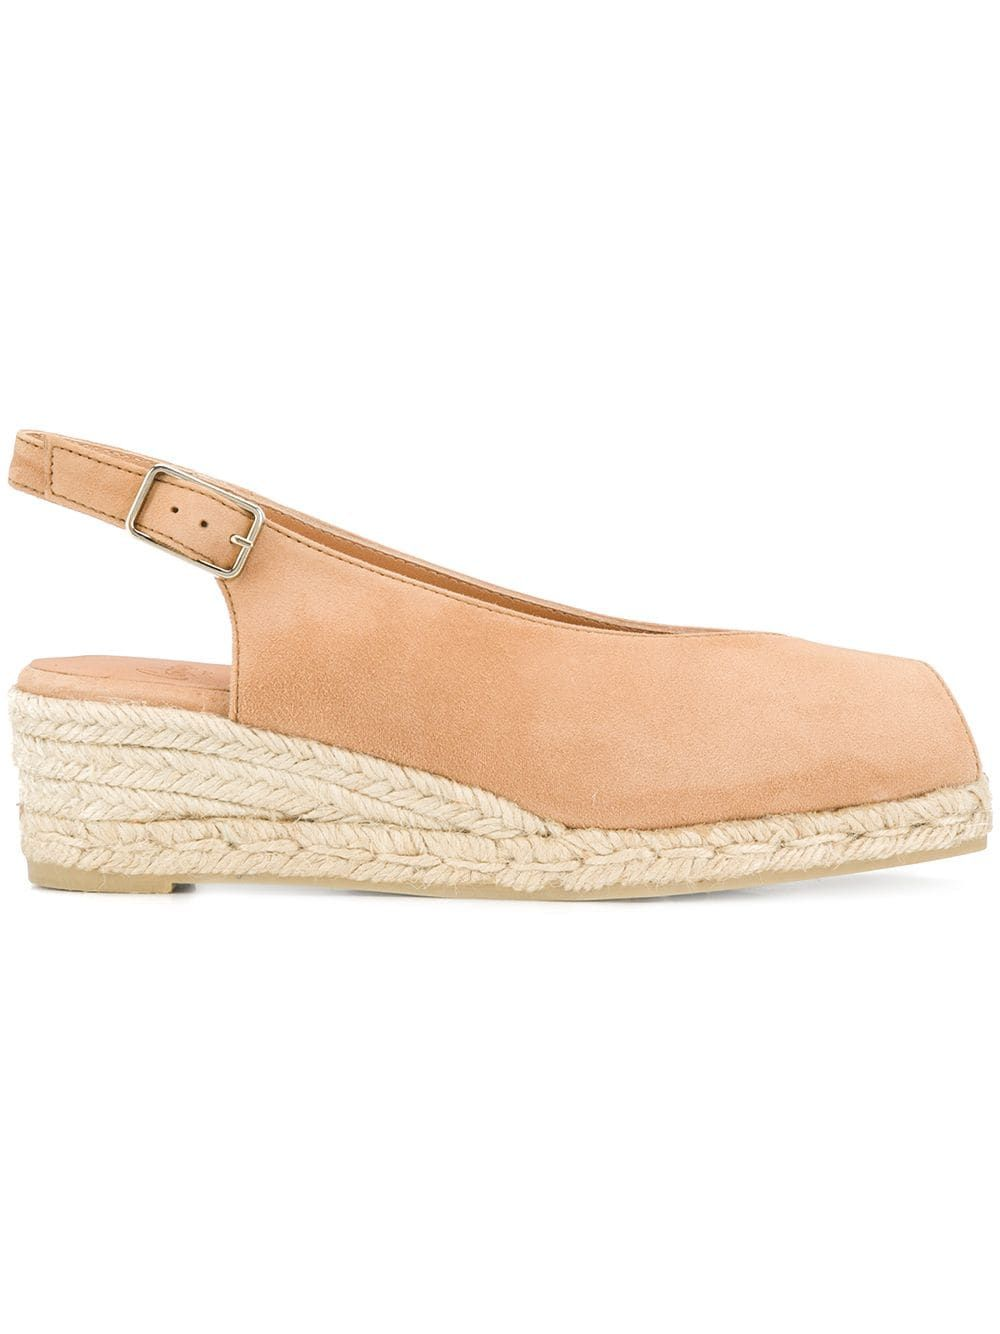 54f8f36c0bb Castañer Dosalia wedge espadrilles - Neutrals in 2019 | Products ...